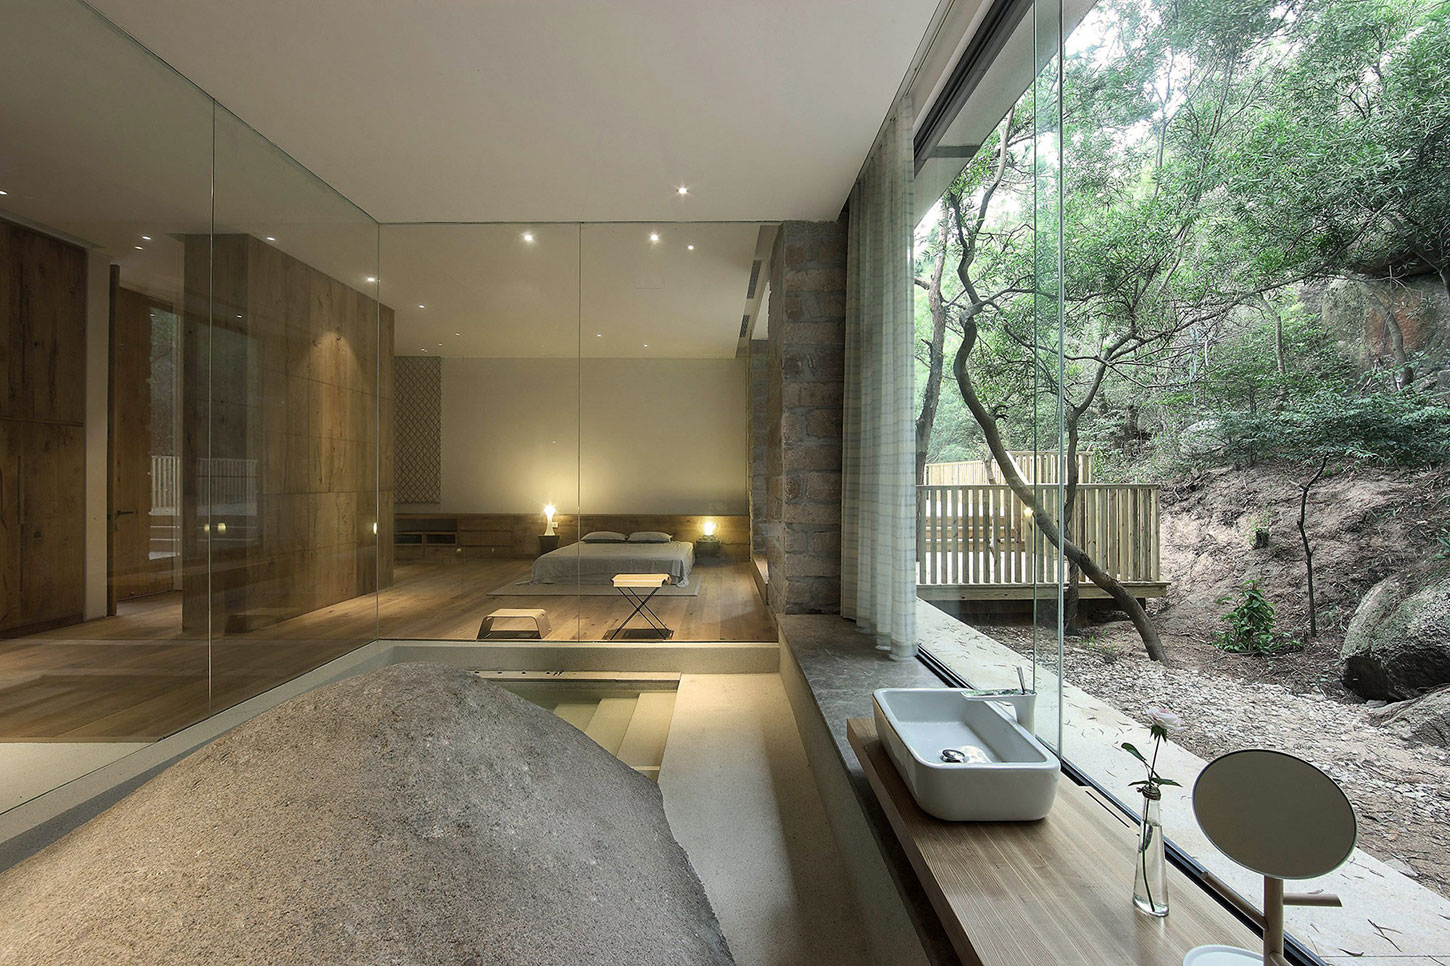 FMX Interior Design Creates a Private Residence in Southwest China